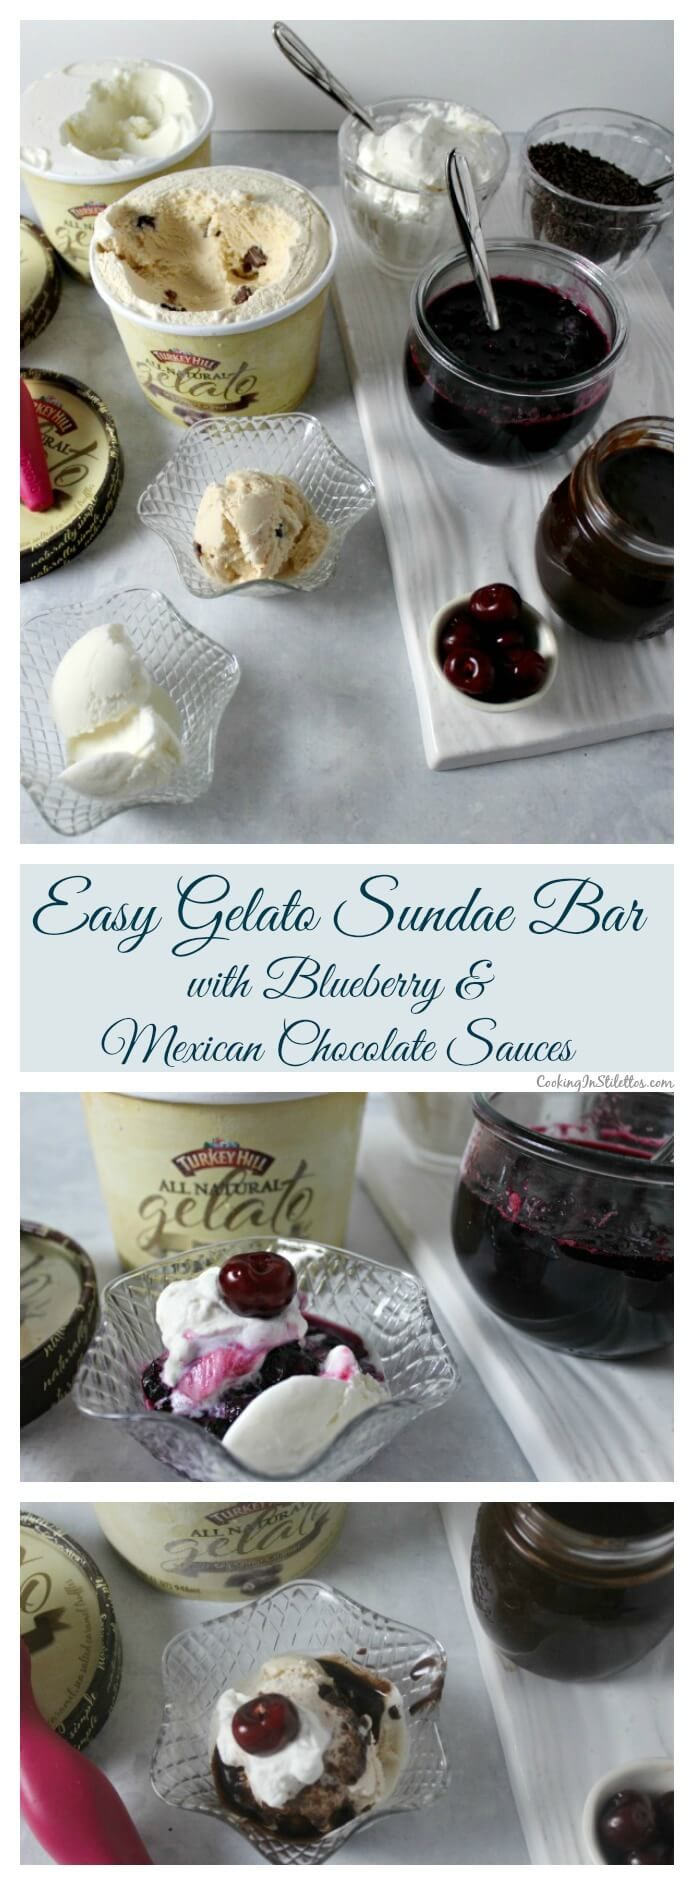 Easy Gelato Sundae Bar with homemade easy Blueberry Sauce and Mexican Chocolate Sauce - so easy to put together and your guests will love! | Cooking In Stilettos ~ http://cookinginstilettos.com #turkeyhillgelato #sponsored